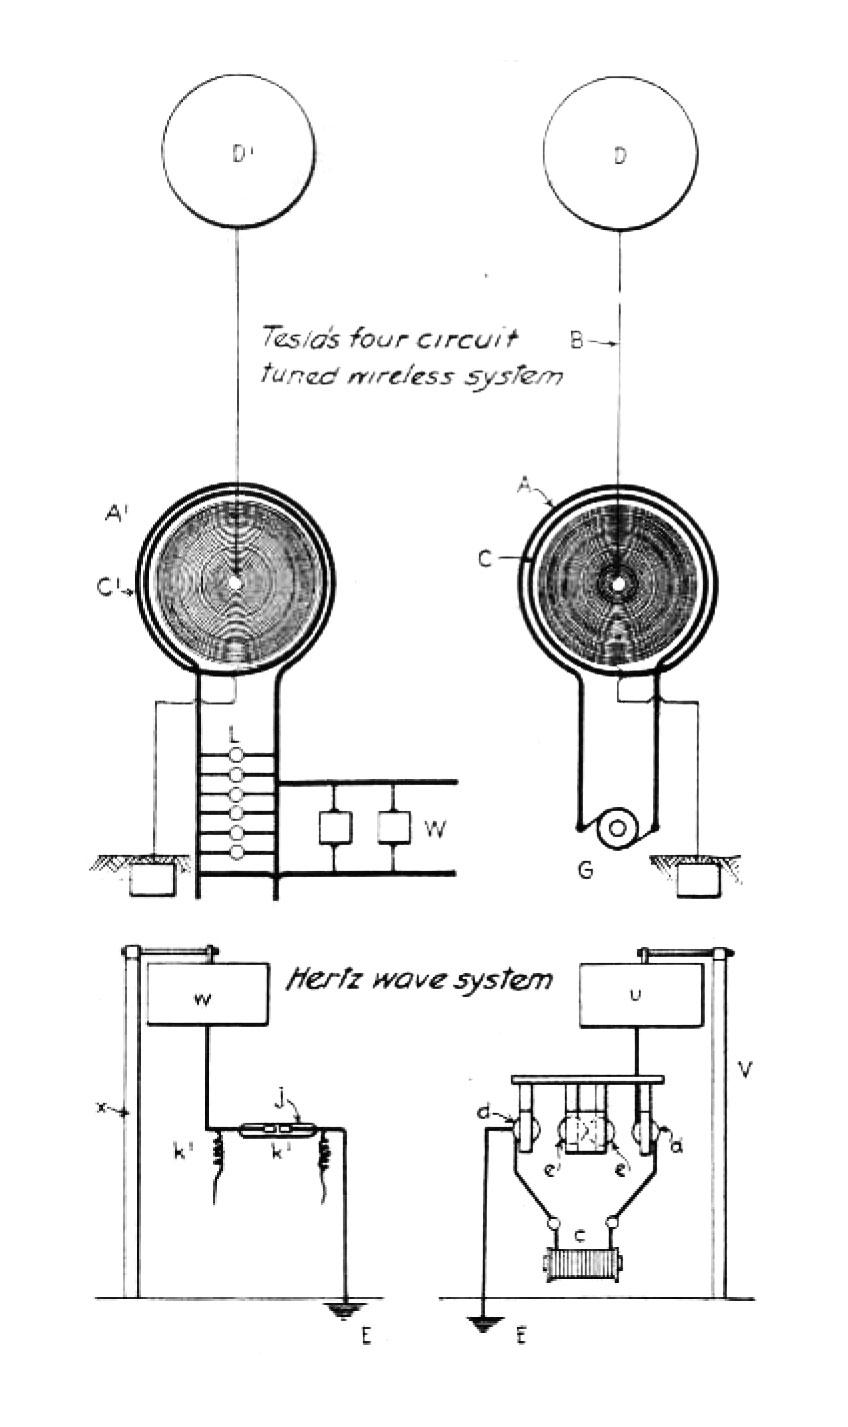 small resolution of diagram of tesla s four circuit tuned system